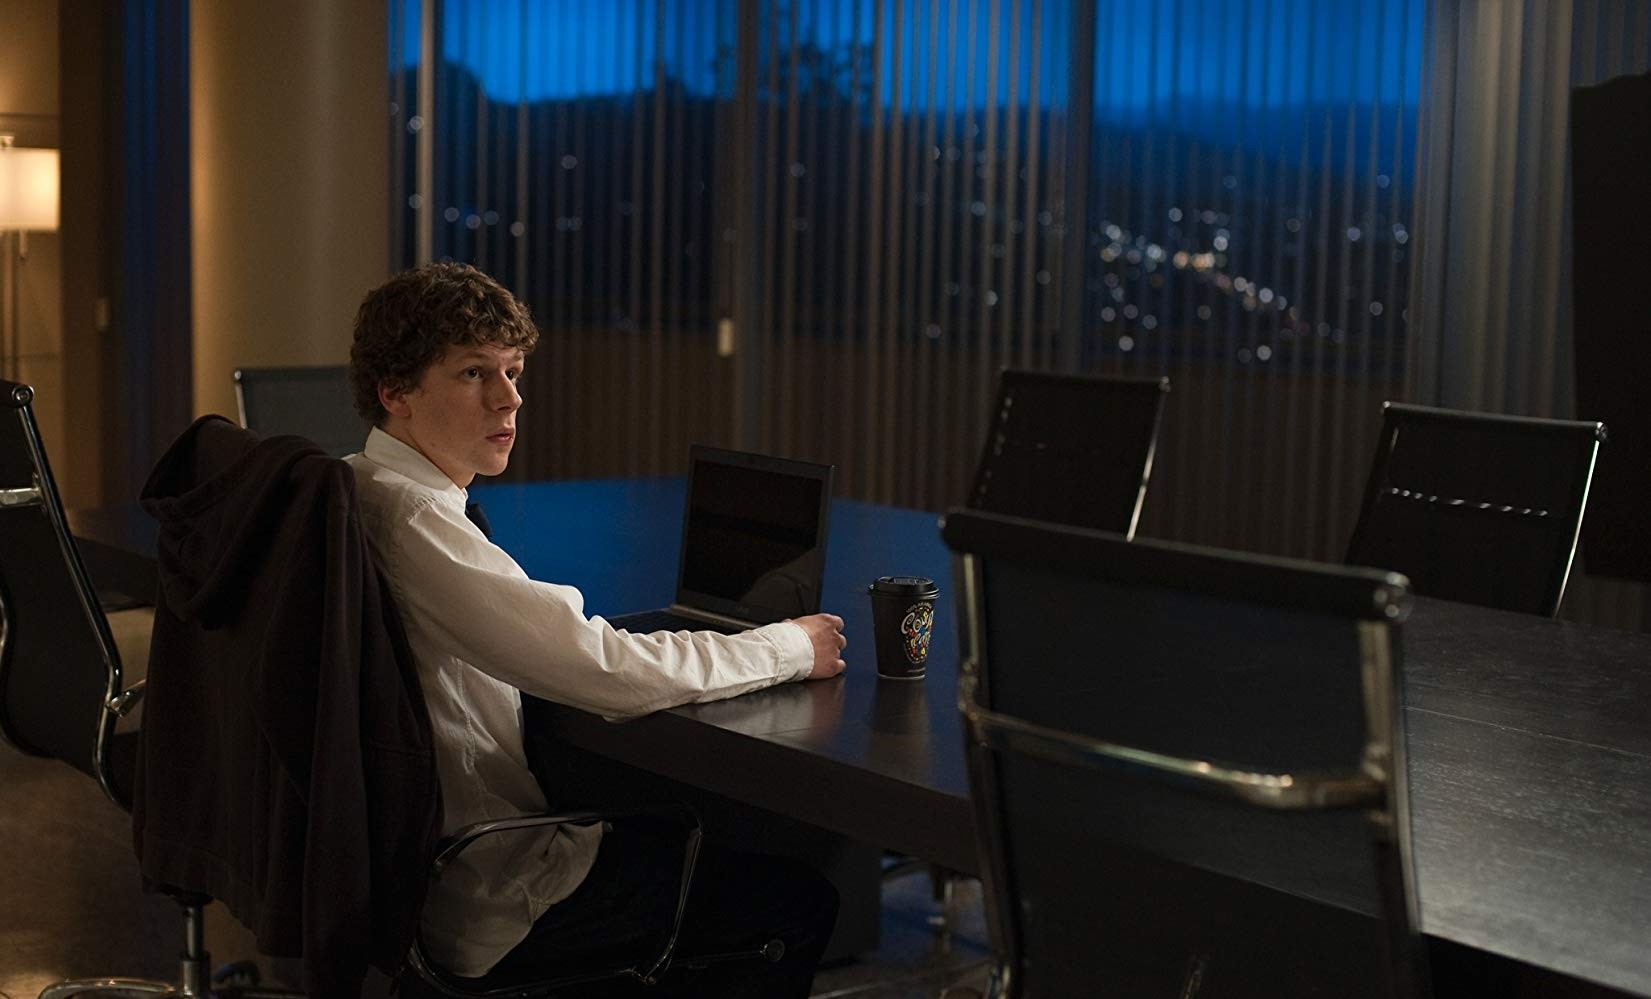 Jesse Eisenberg plays the founder of Facebook, Mark Zuckerberg, in u201cThe Social Network.u201d